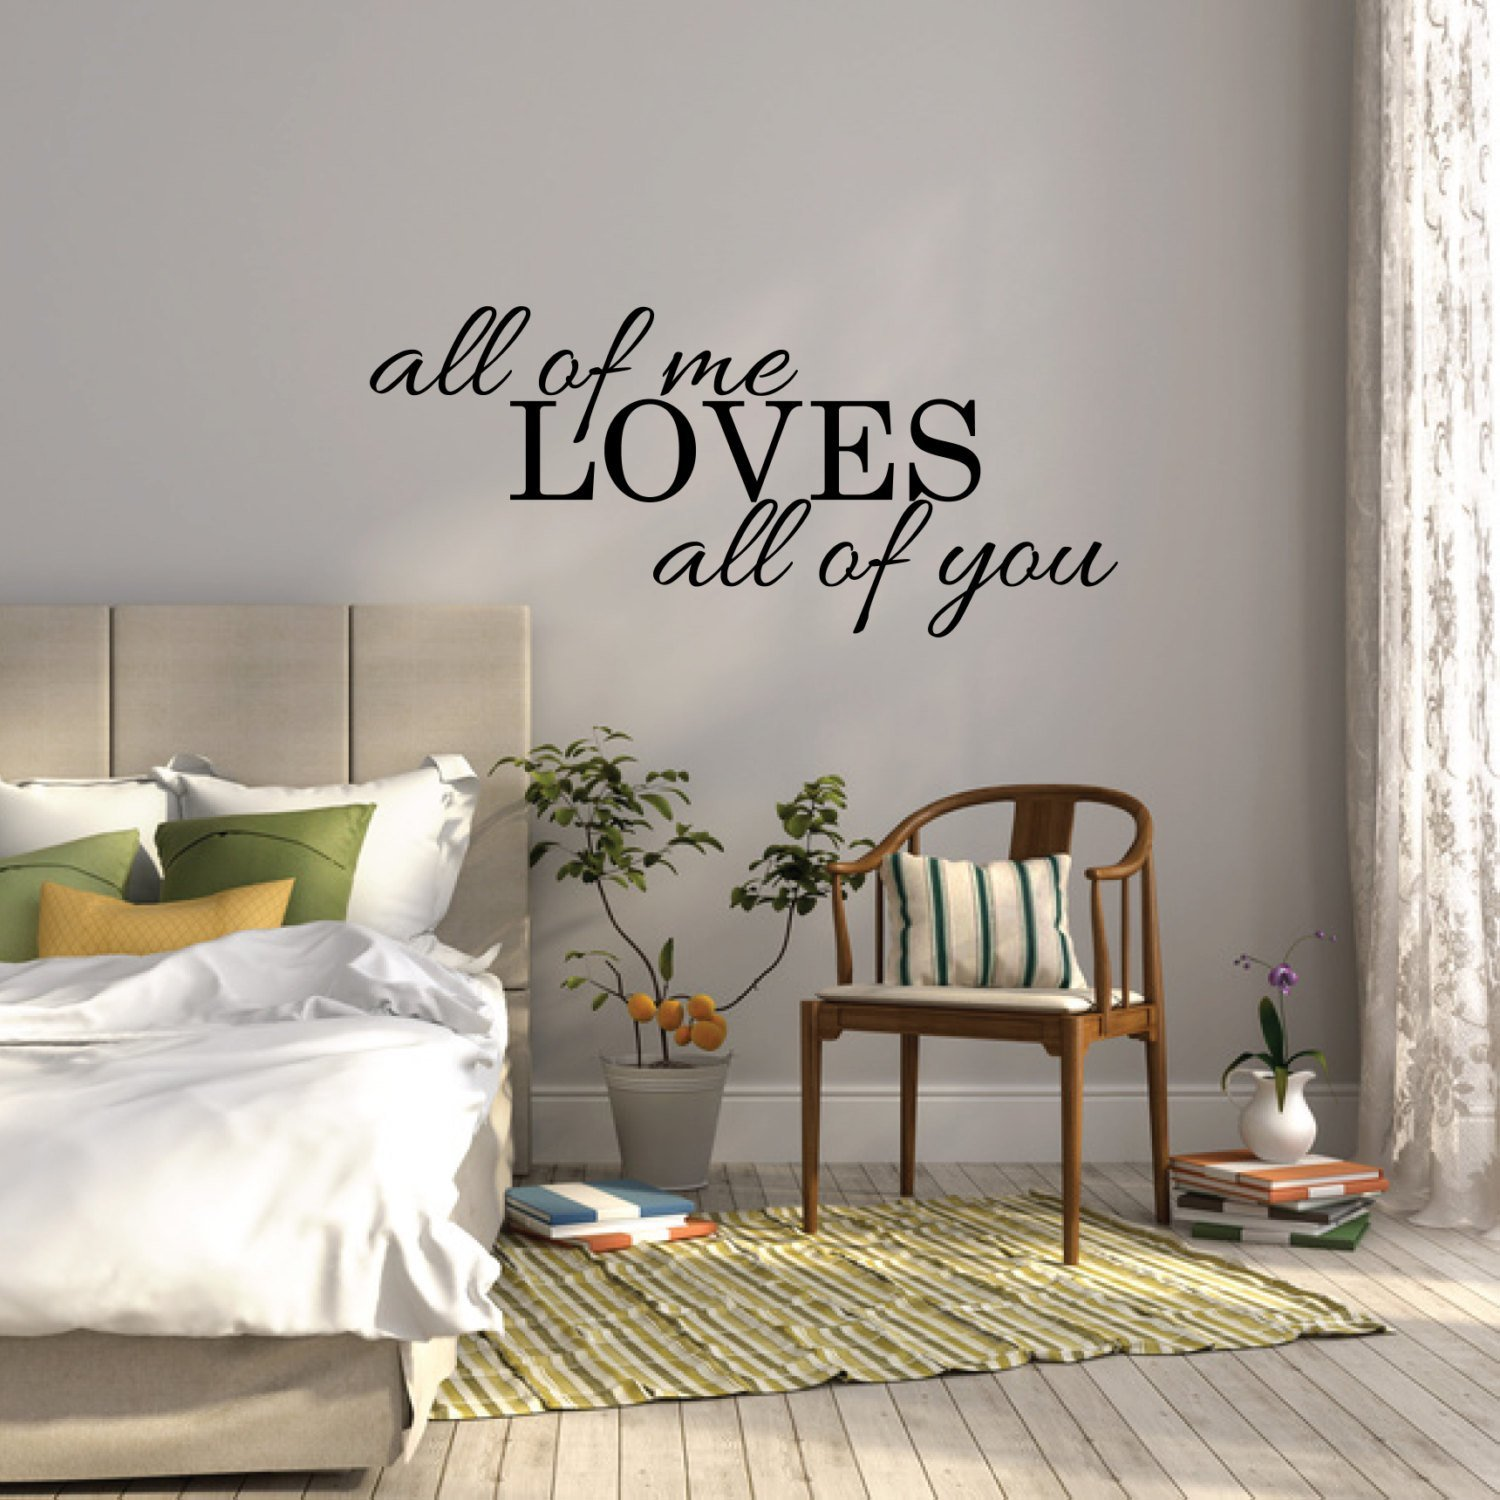 Best All Of Me Loves All Of You Wall Sticker Bedroom Wall Decal With Pictures